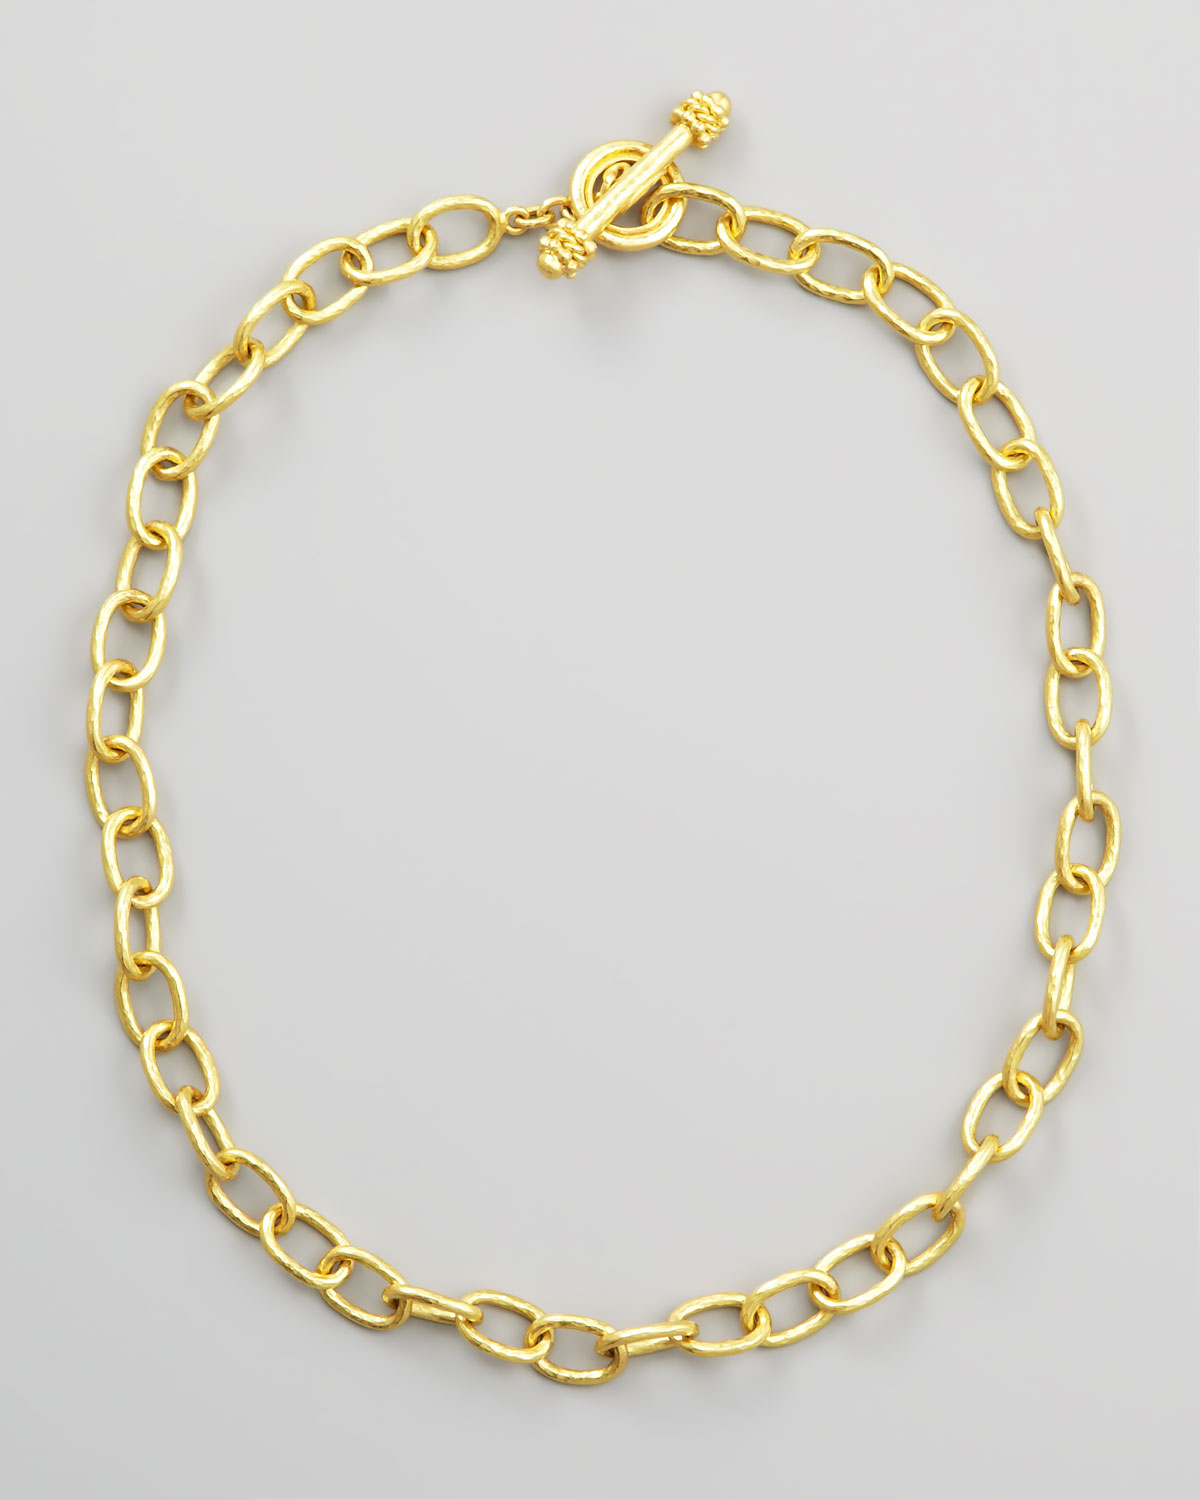 Elizabeth Locke Volterra 19k Gold Link Necklace, 17L